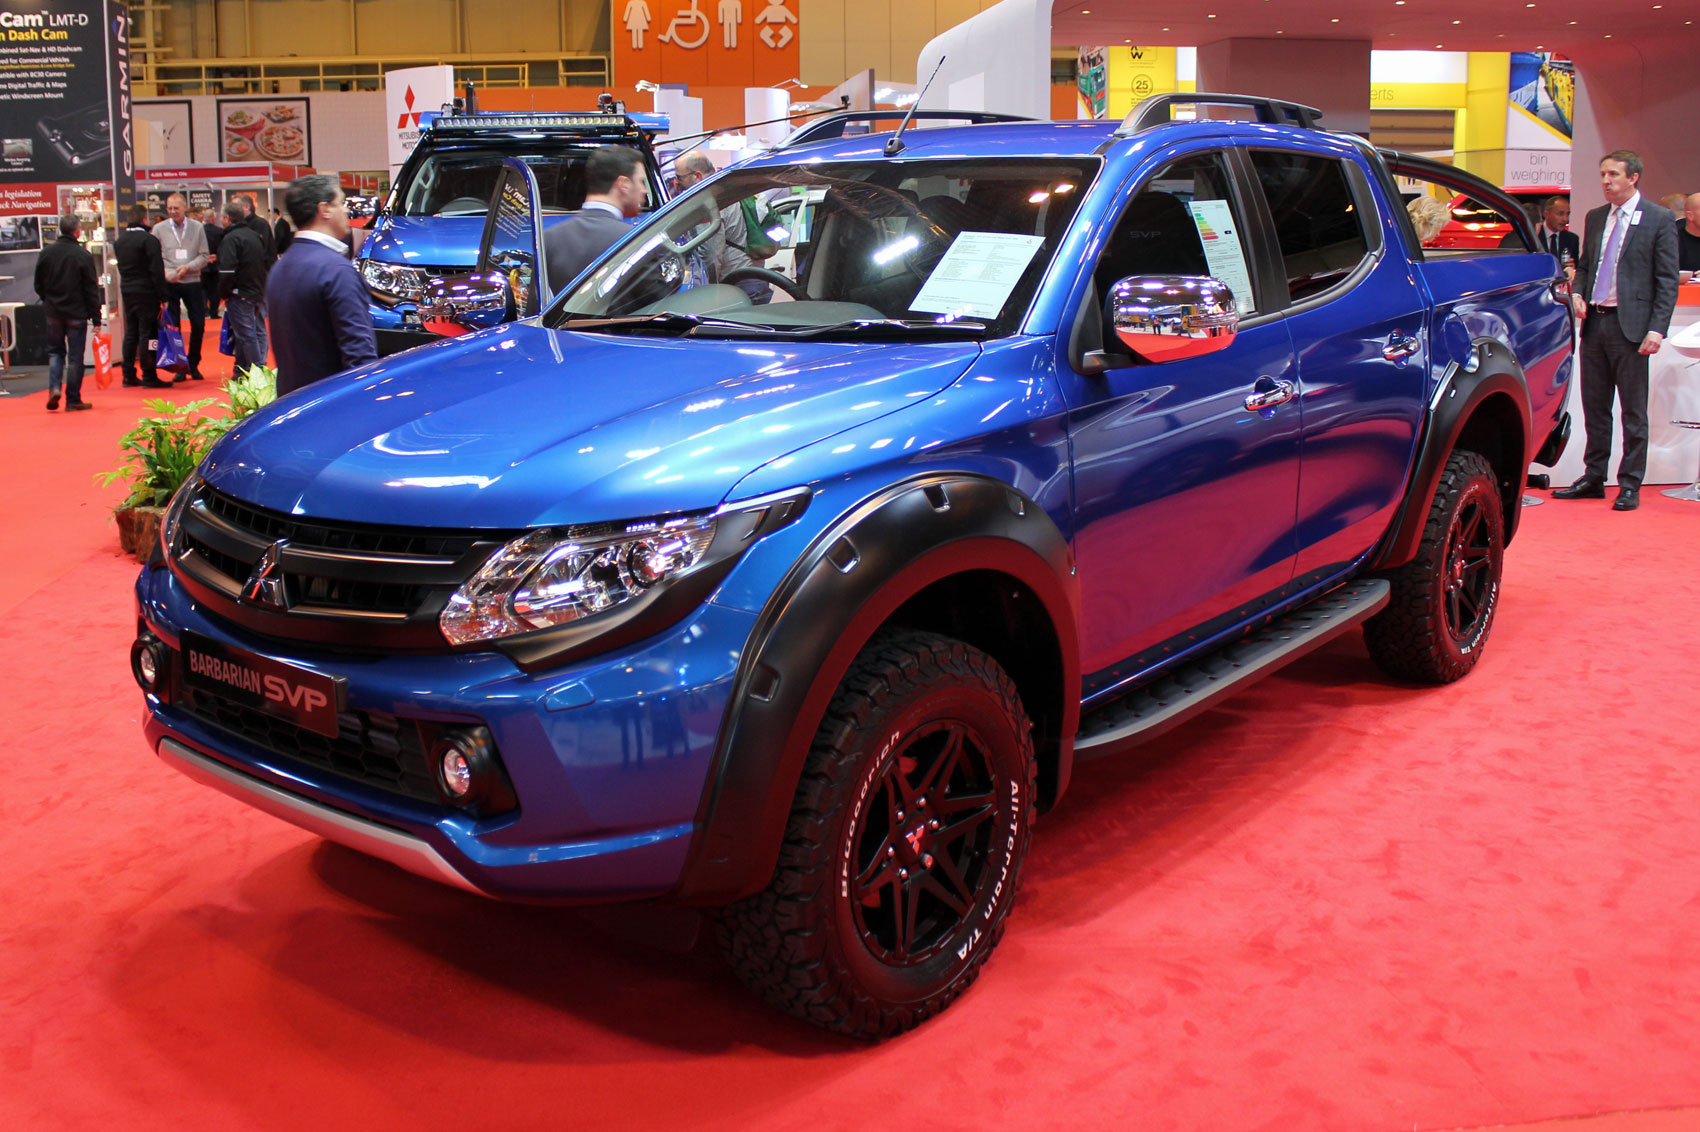 mitsubishi l200 special editions star at the cv show 2017 parkers. Black Bedroom Furniture Sets. Home Design Ideas